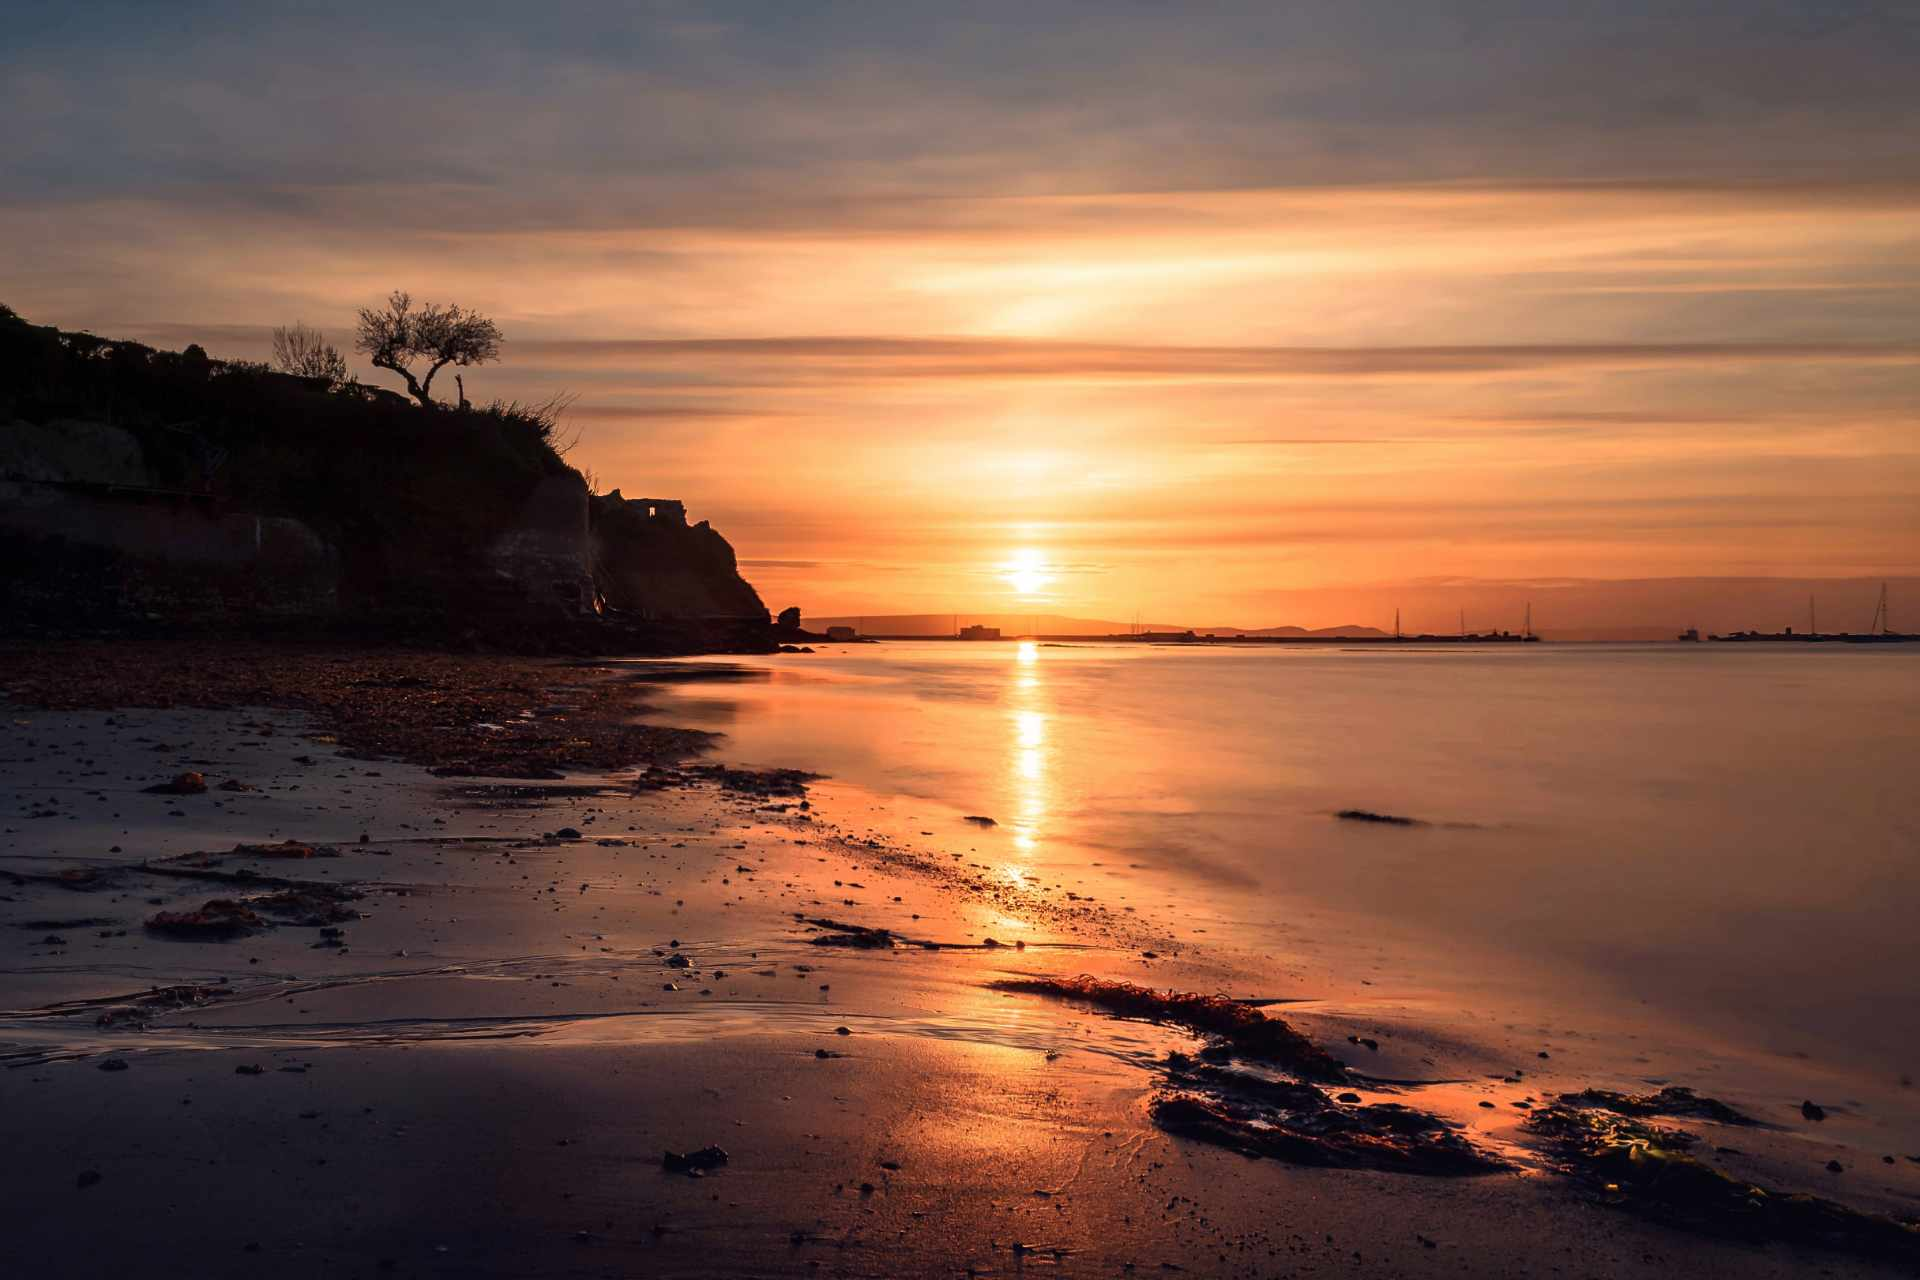 sunset-on-beach-castle-cove-weymouth-best-beaches-in-dorset